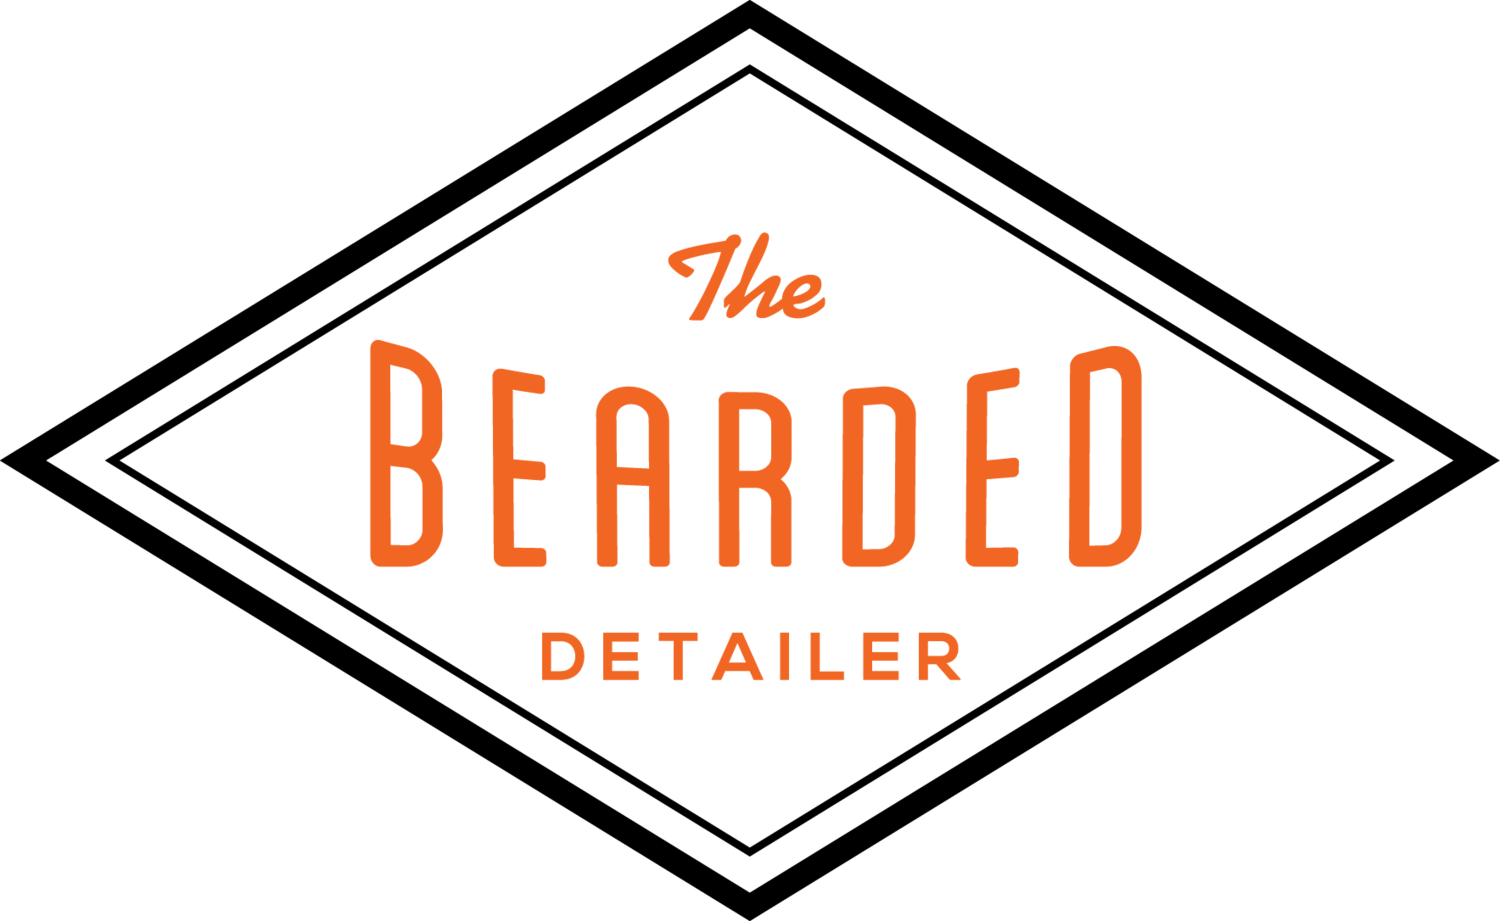 The Bearded Detailer